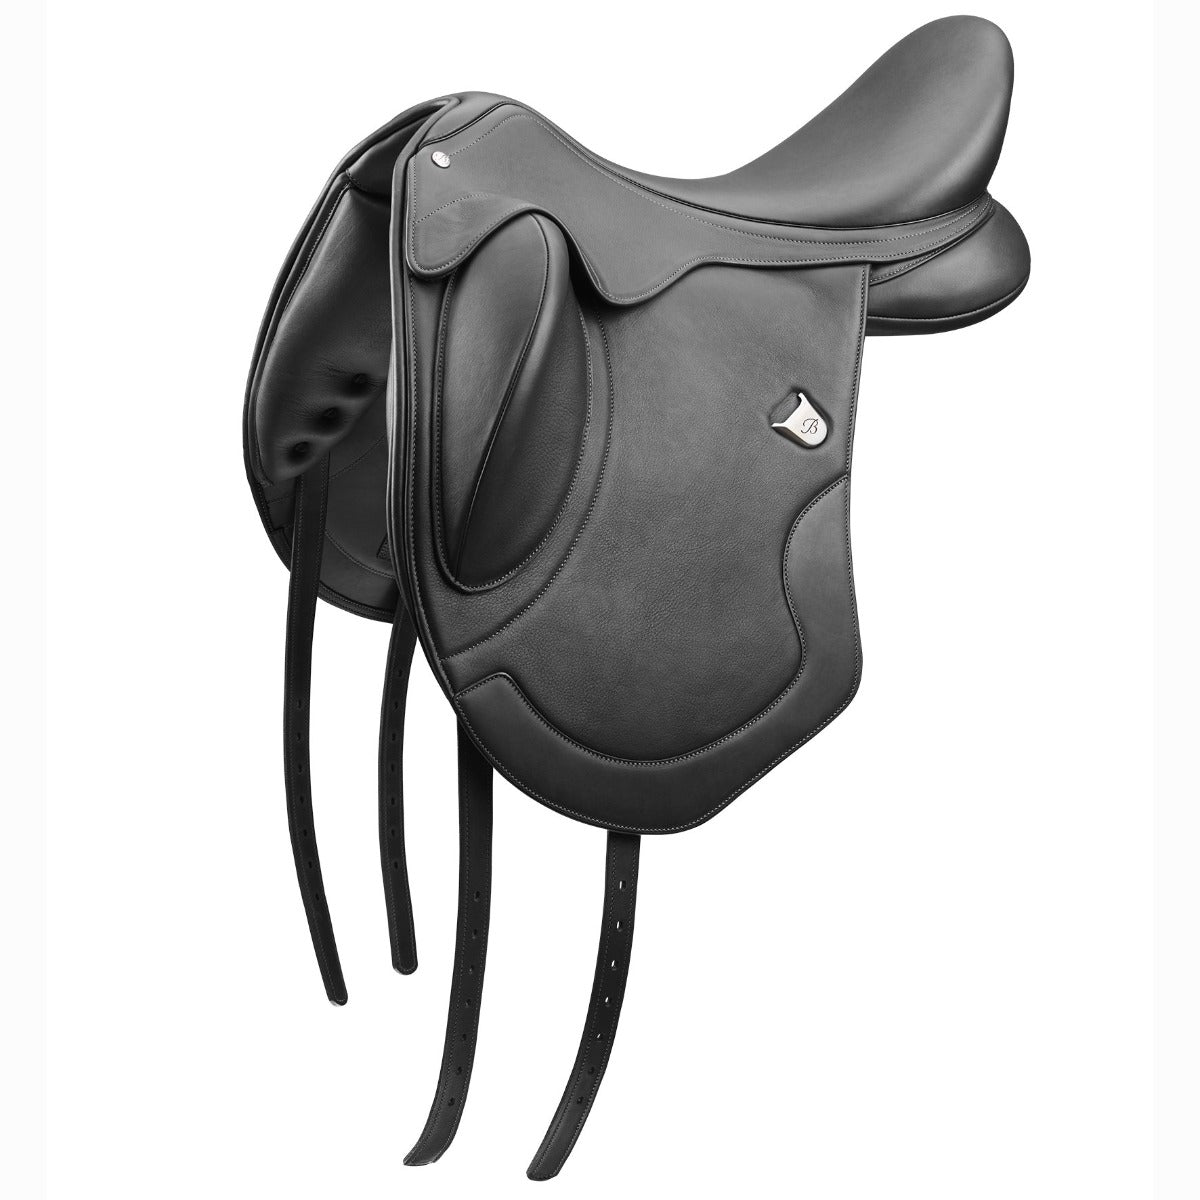 Bates Artiste Dressage Saddle with HART